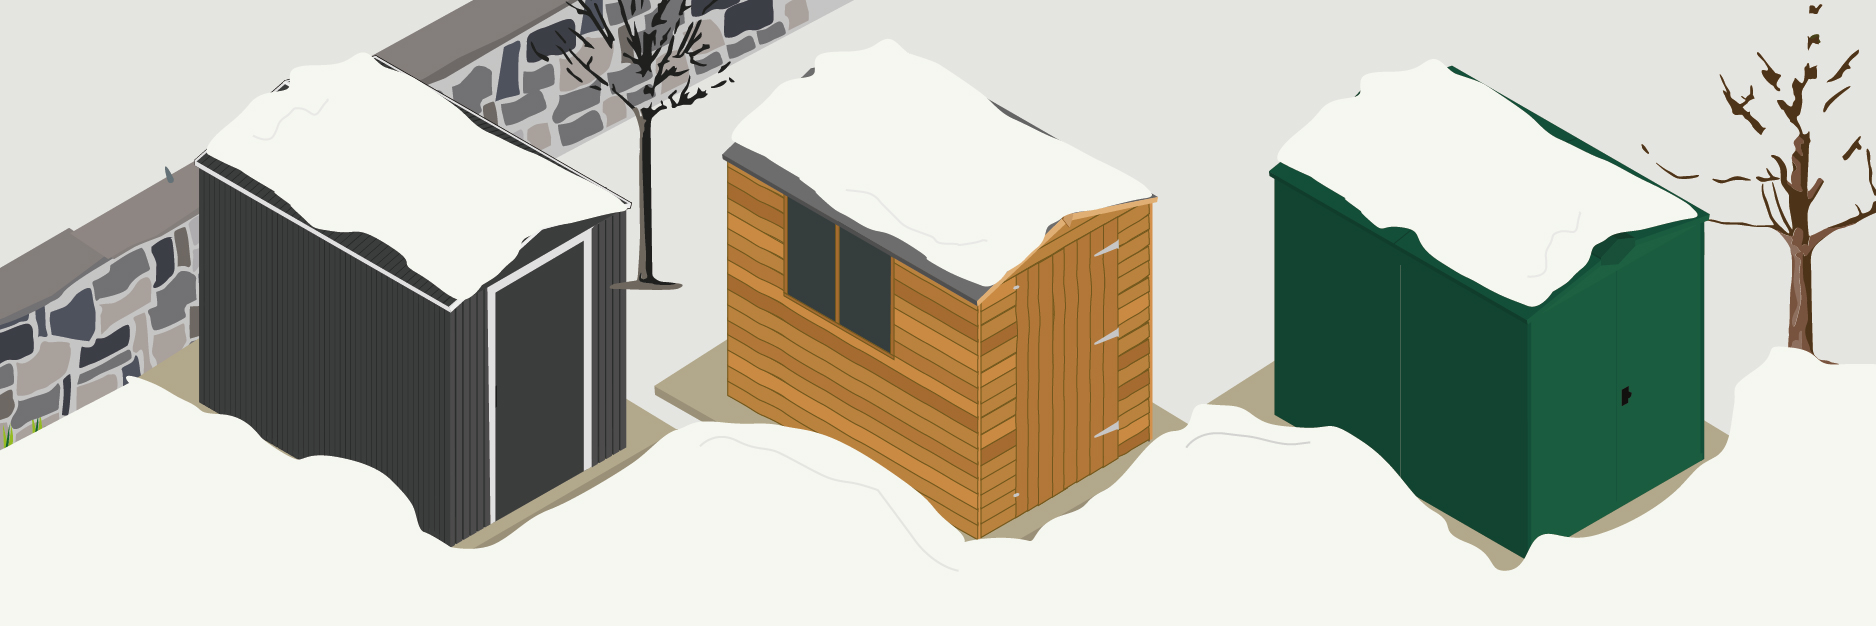 Snow Proof Asgard Sheds